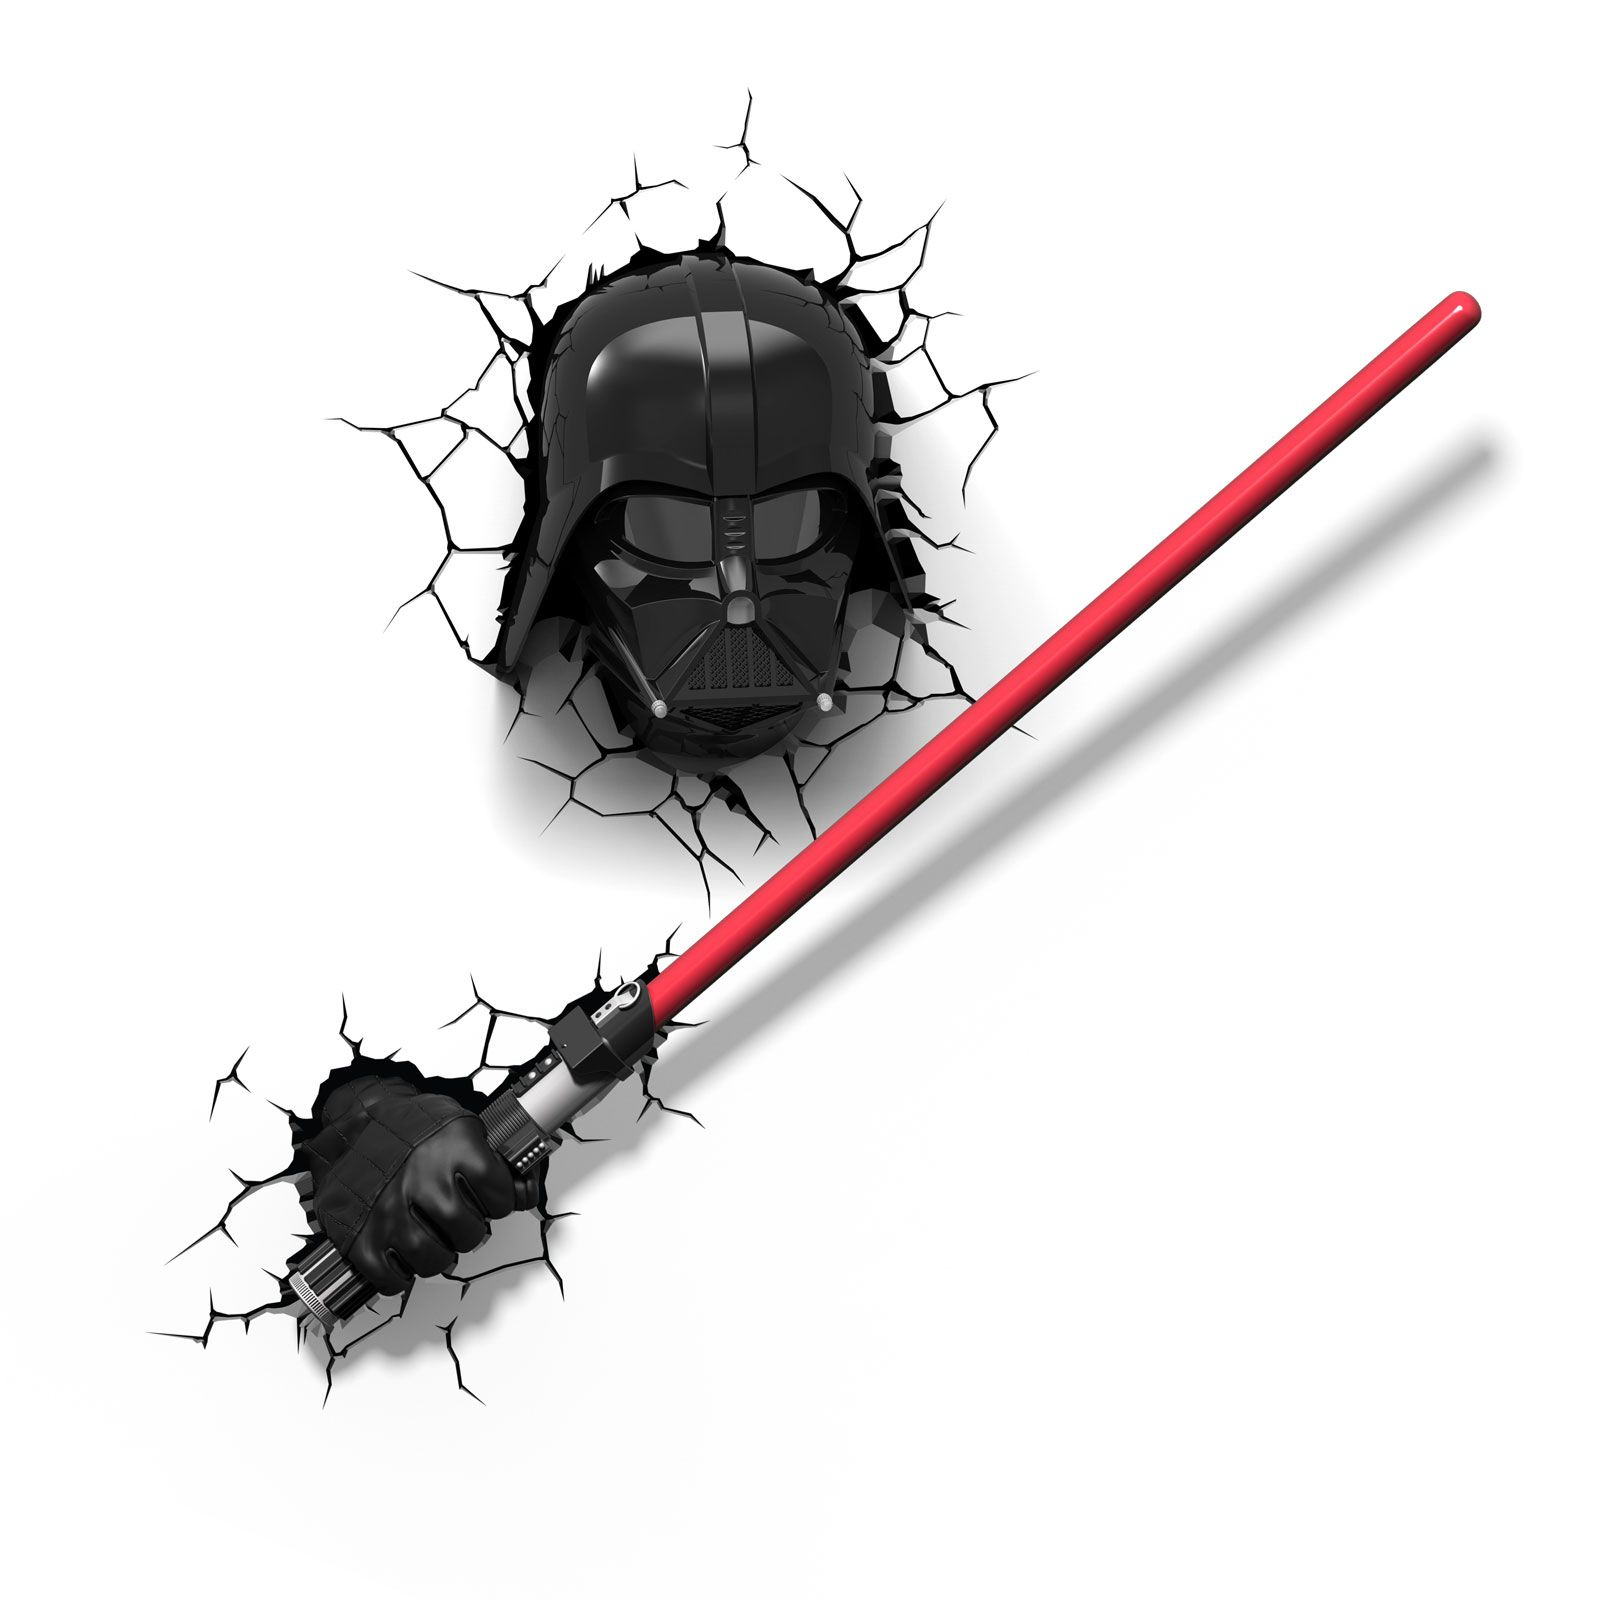 Star Wall Stickers Uk Star Wars Darth Vader S Lightsaber 3d Led Wall Light